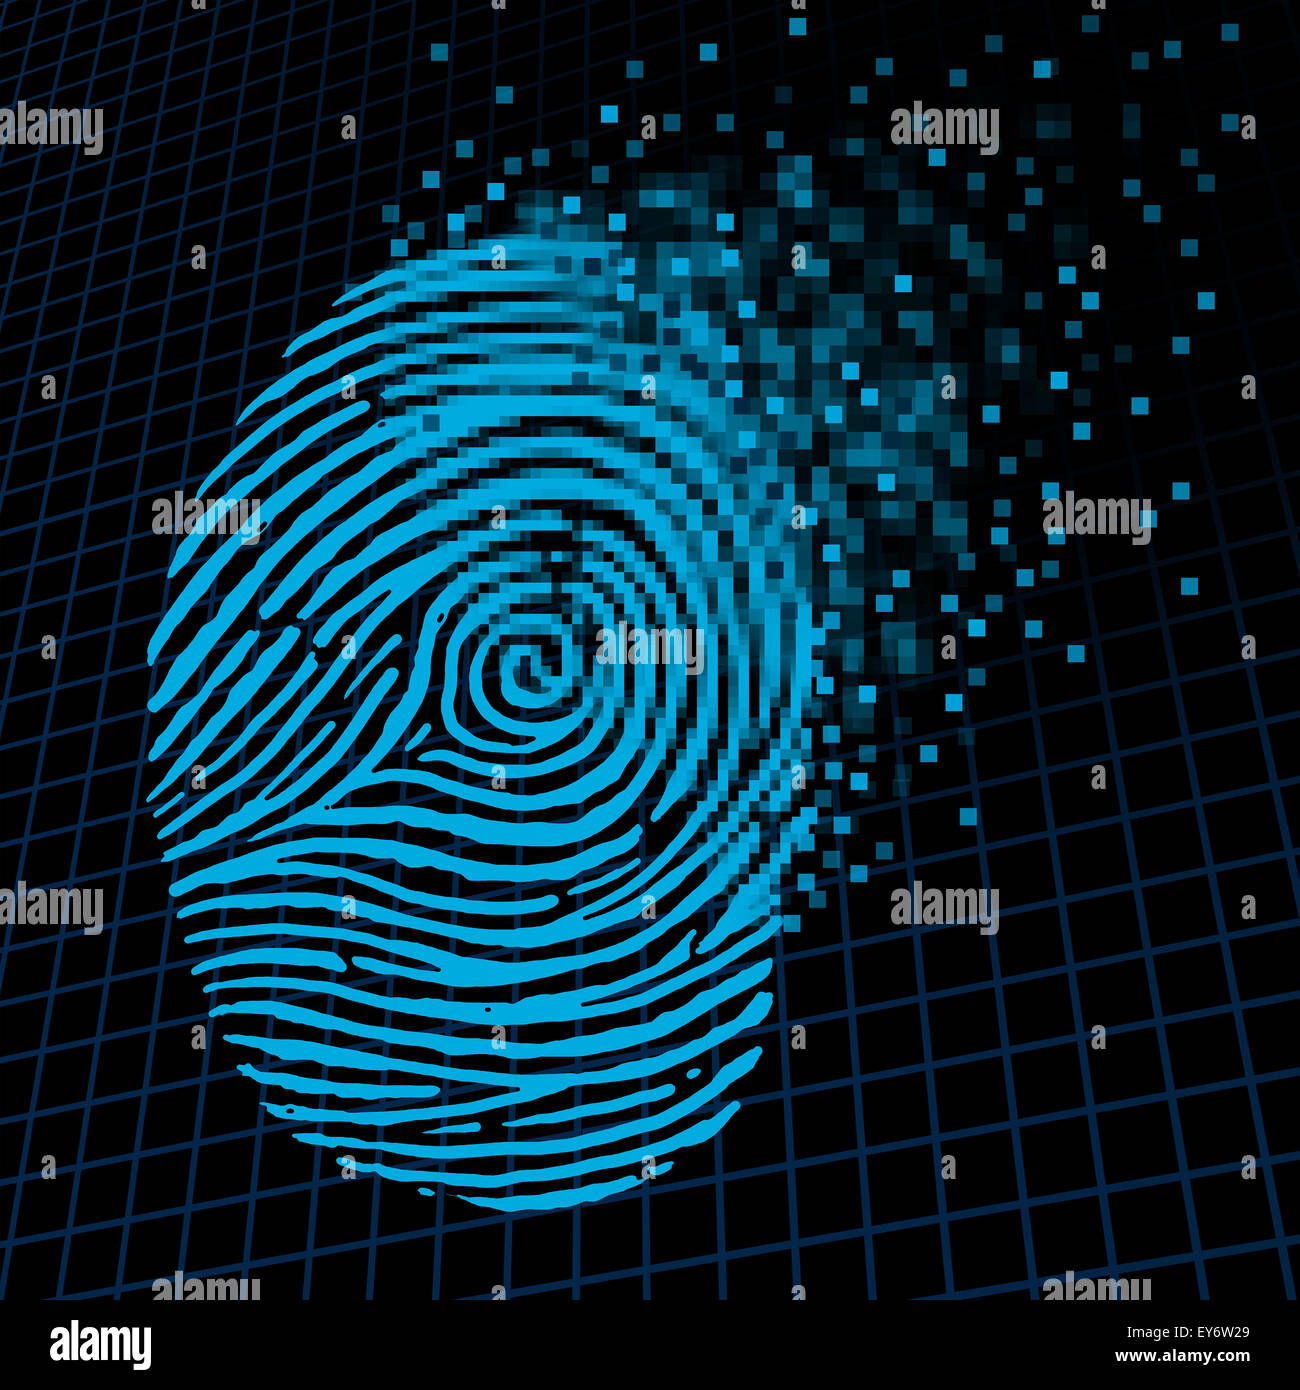 Personal information encryption and private data protection as a digital fingerprint being pixelated into encrypted - Stock Image